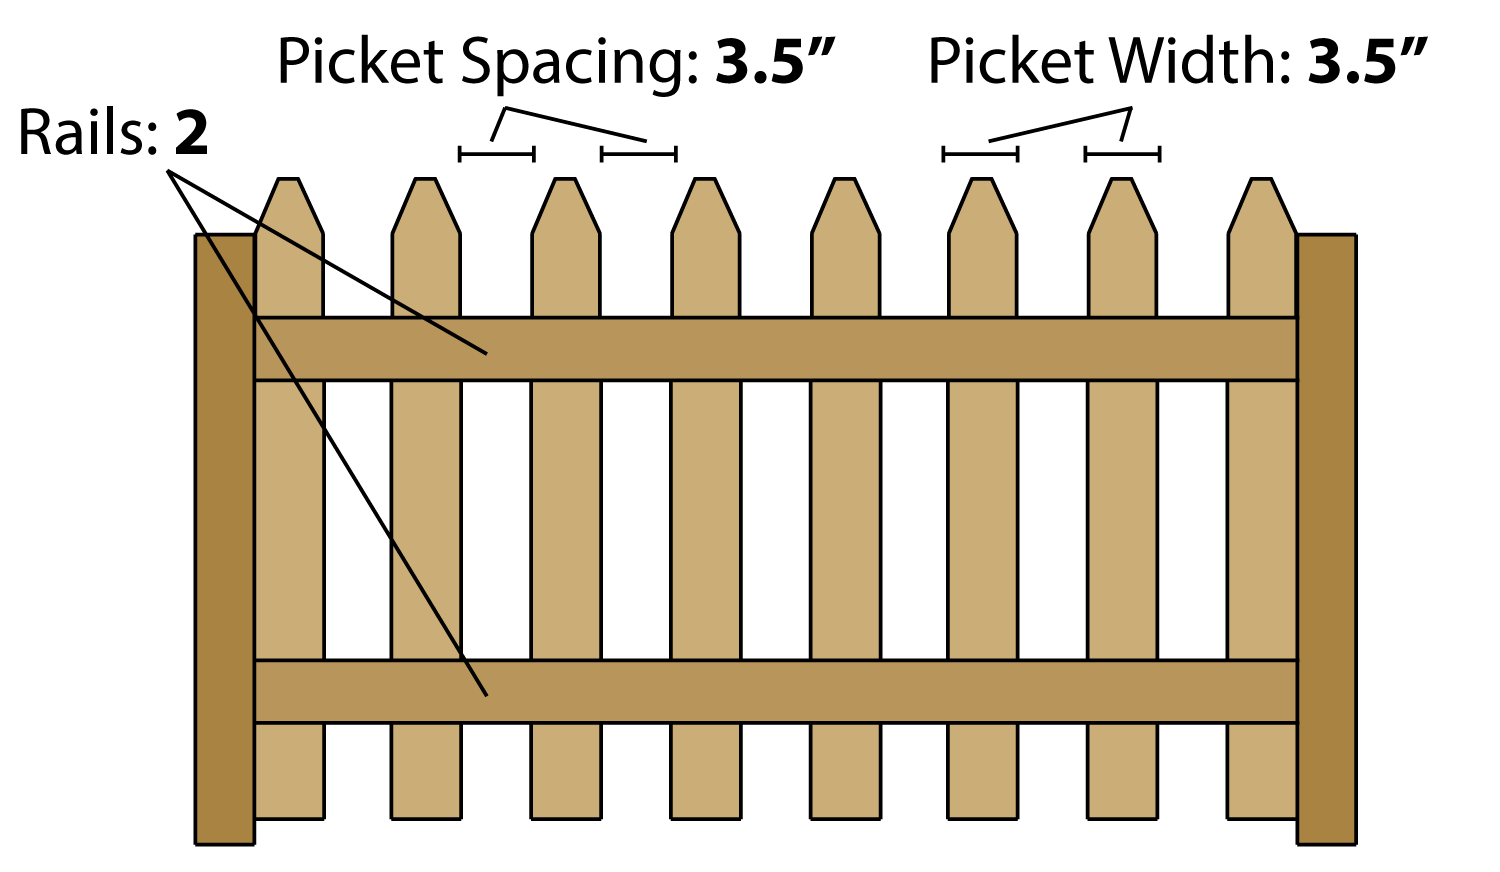 Estimating parts to build a picket fence